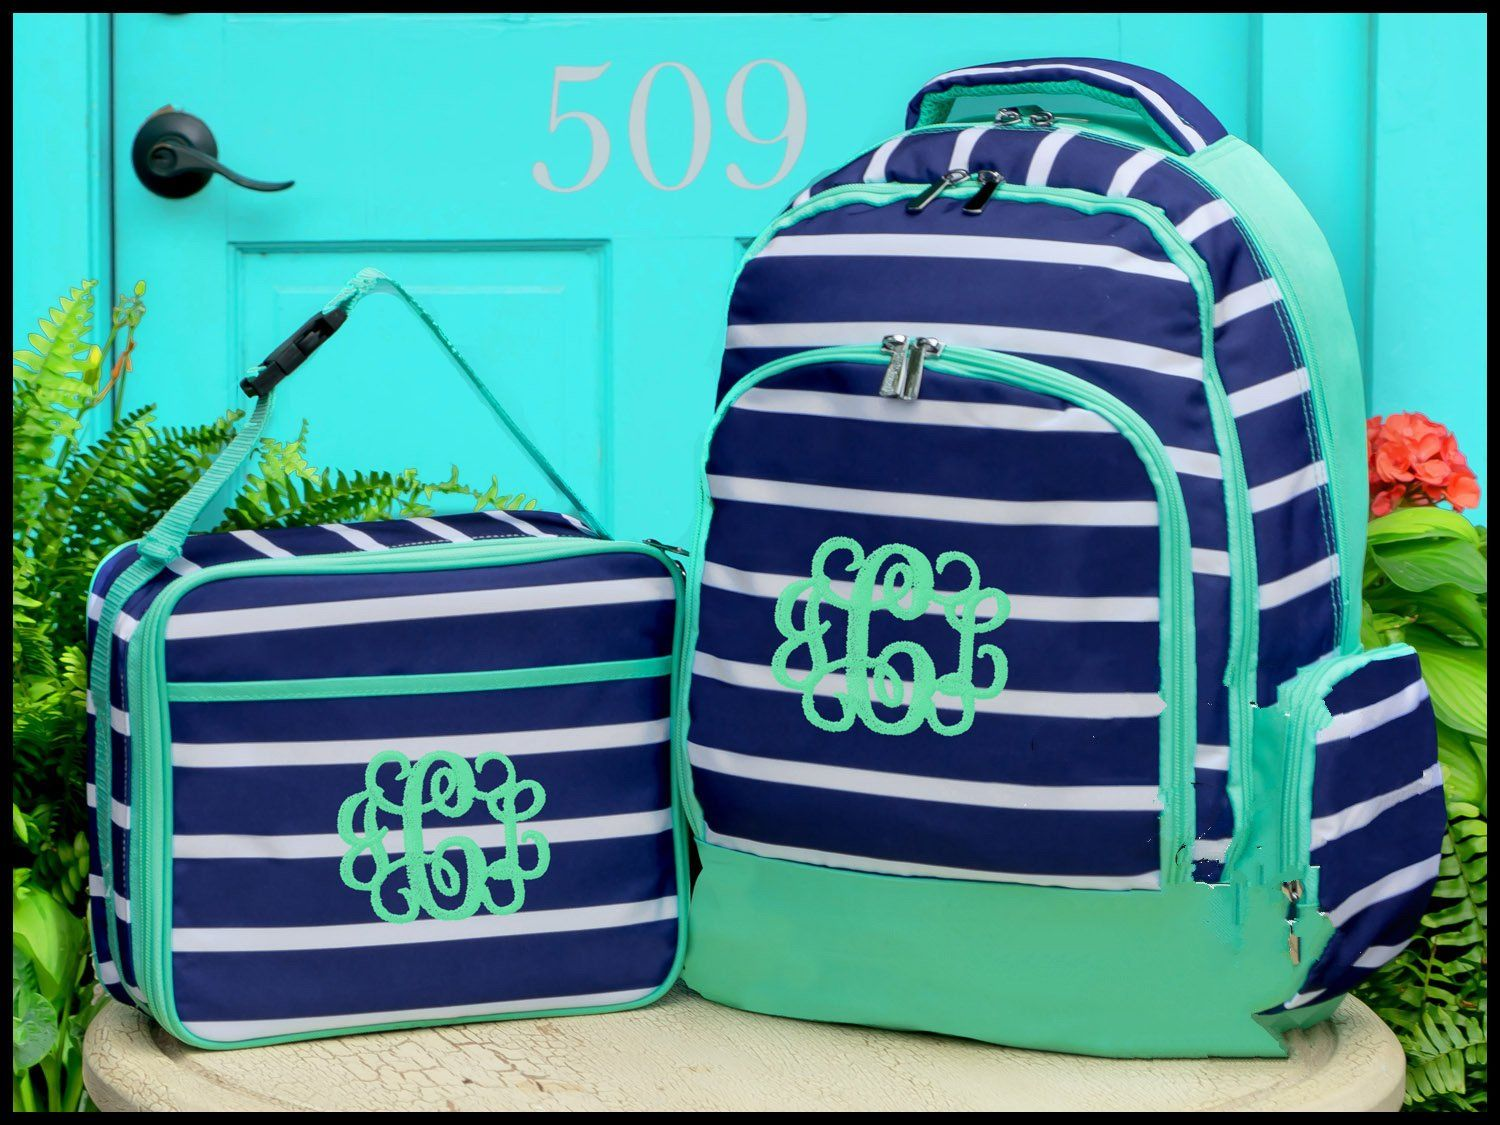 33cbba6cc6af Backpack and Lunch Box Set - Monogrammed Backpack and Lunchbox ...